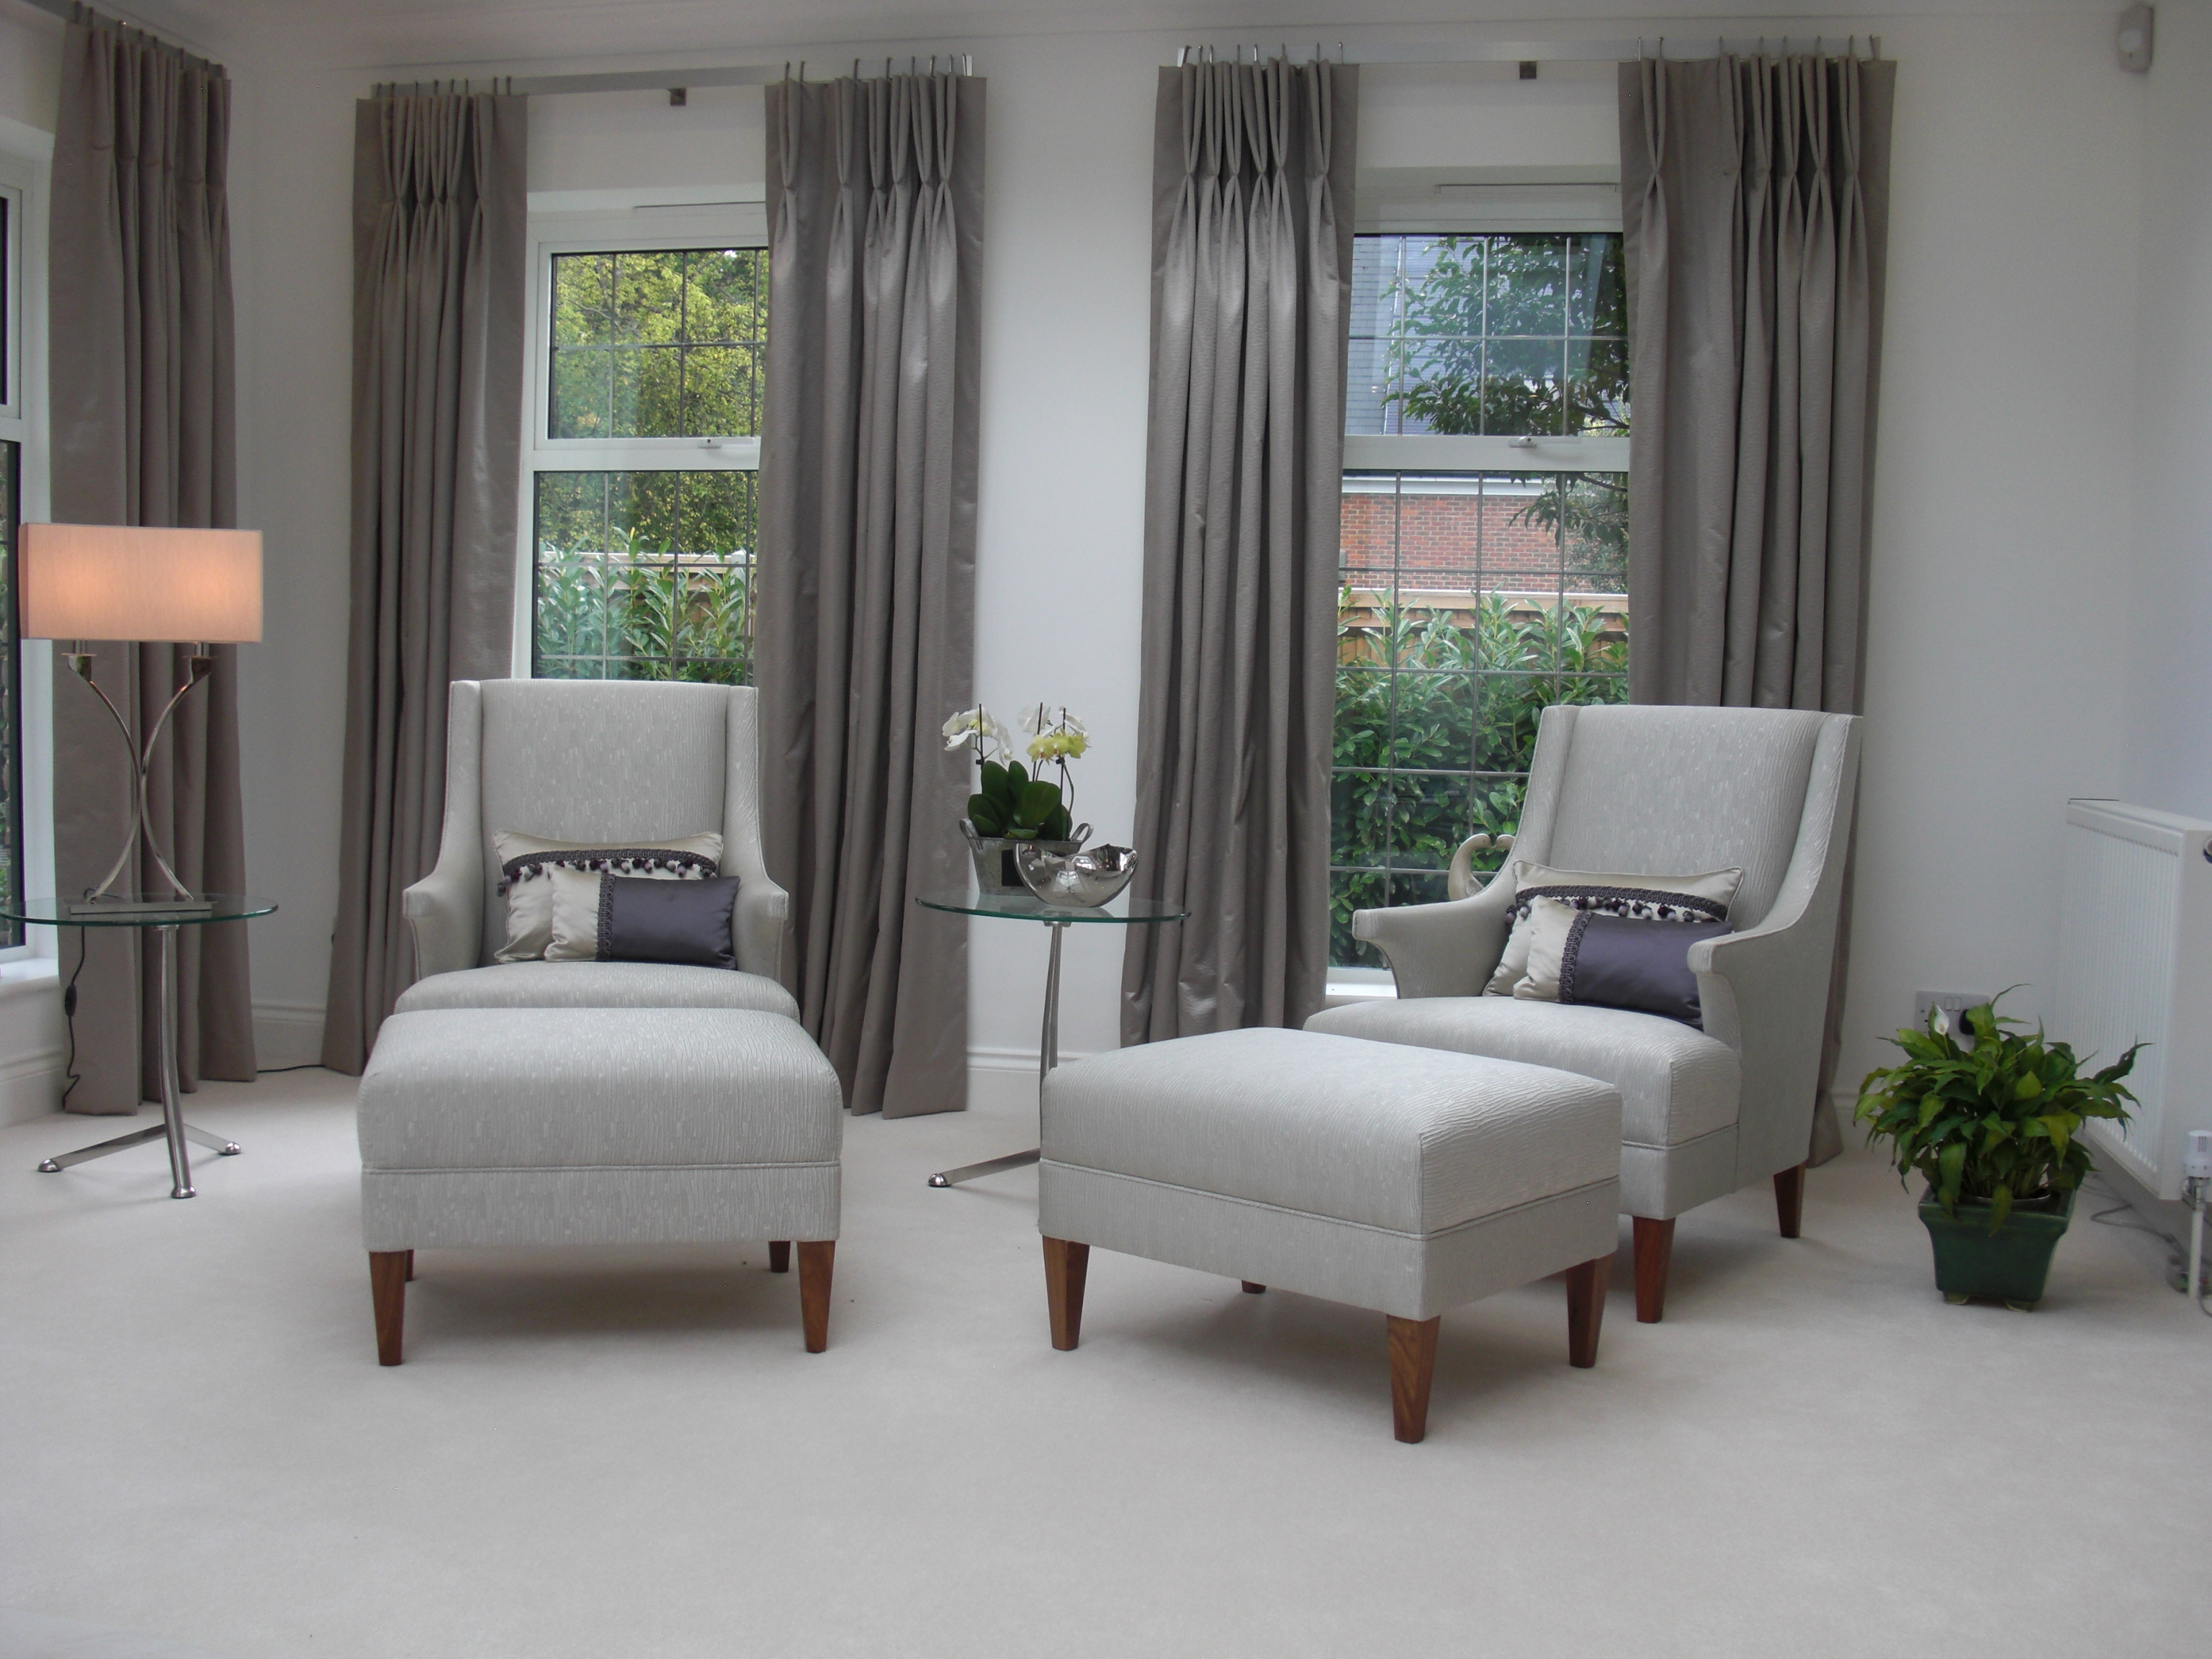 Two armchairs with footstools in the garden end of the room.